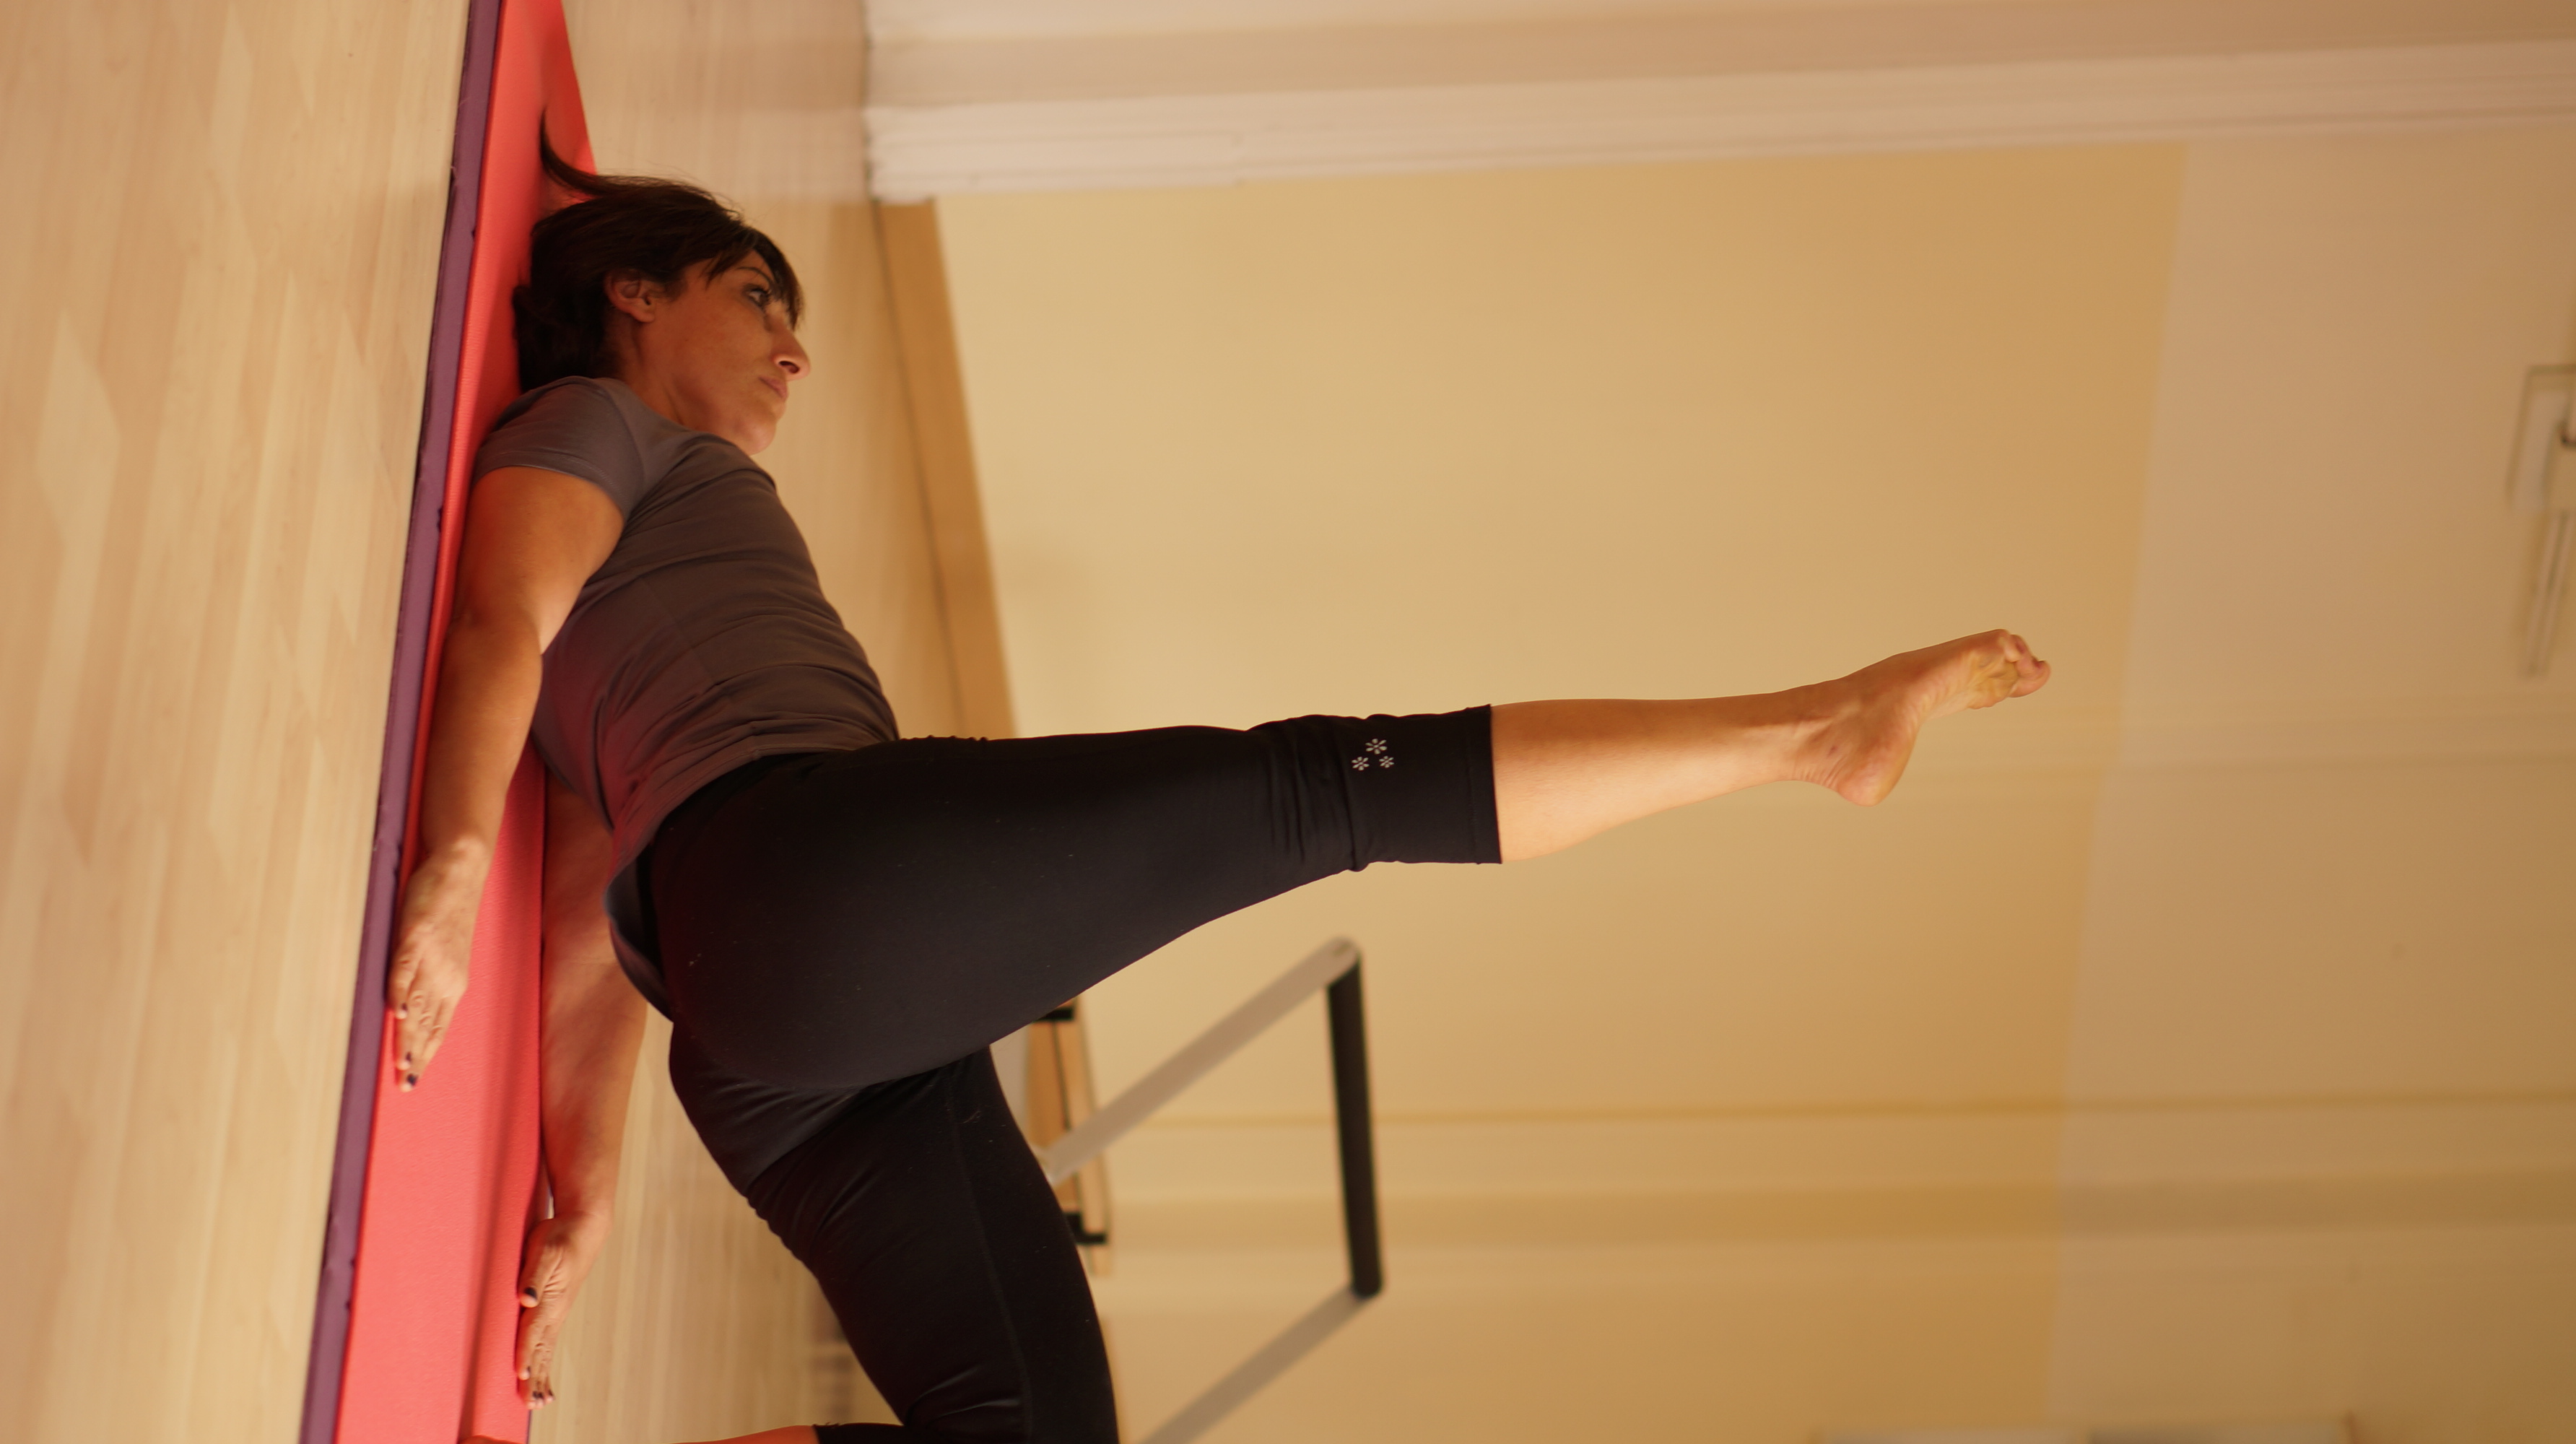 Pilates increases muscle strength